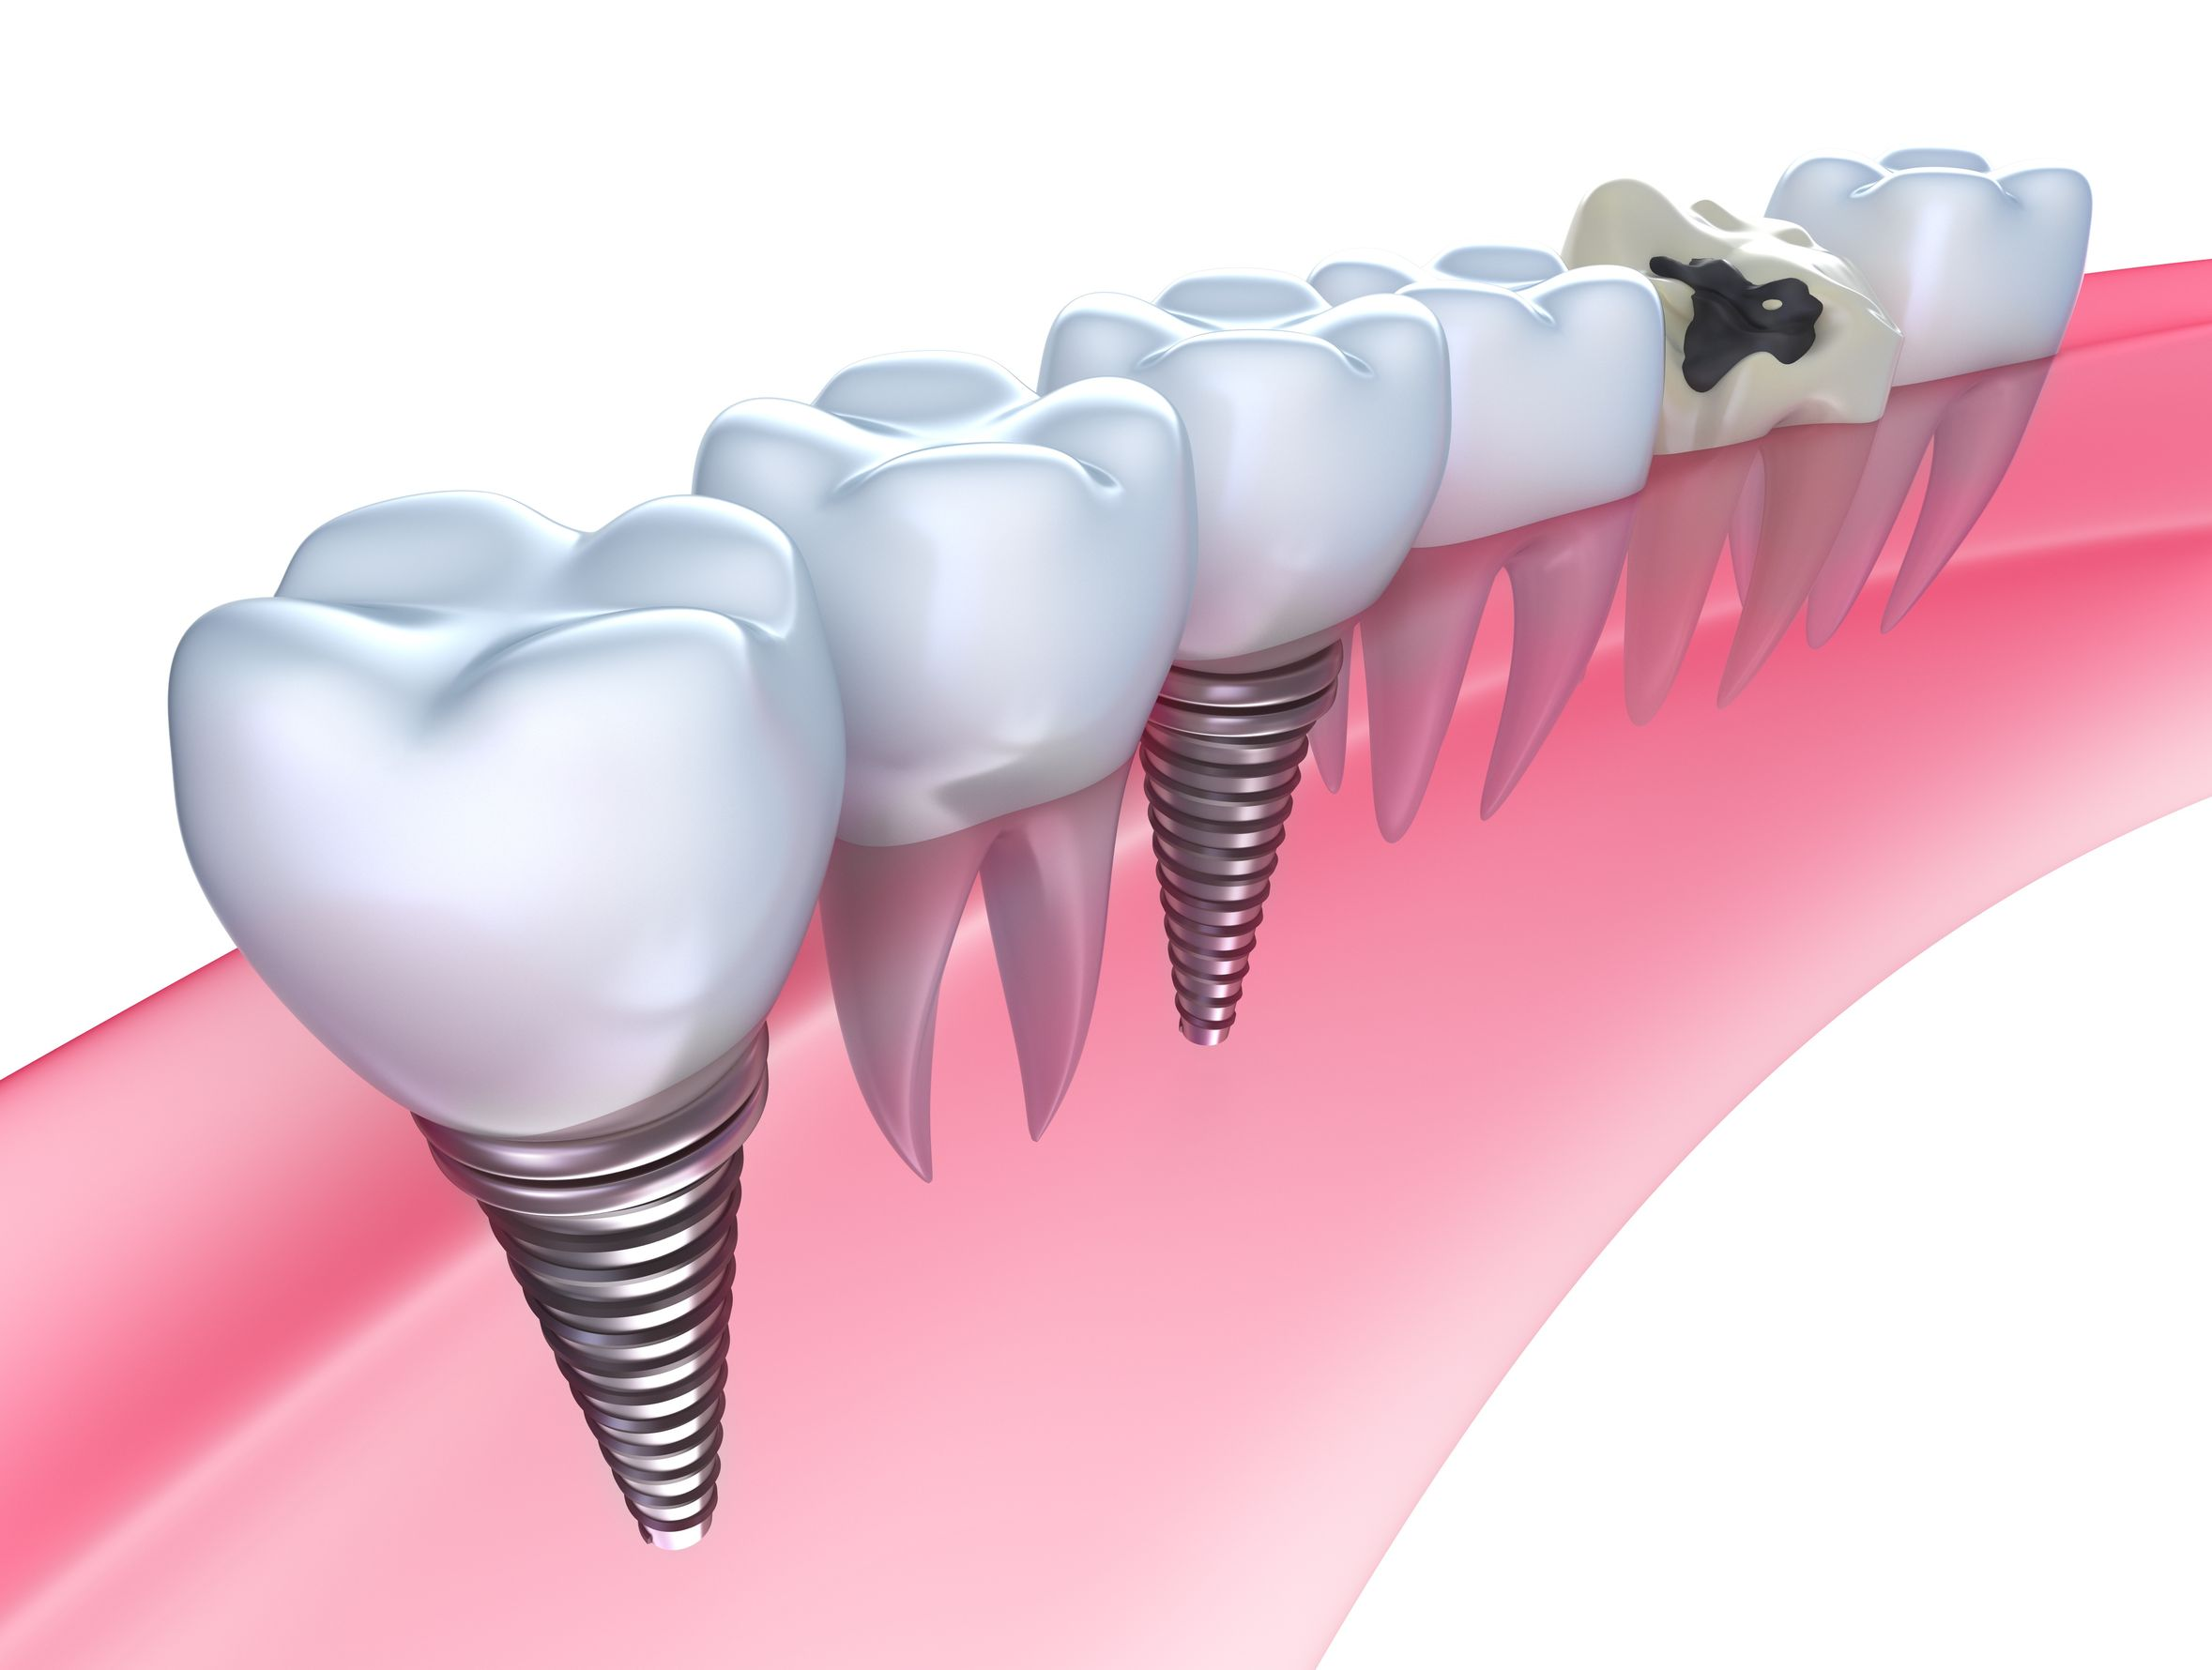 Where can I find Las Vegas dental implants?